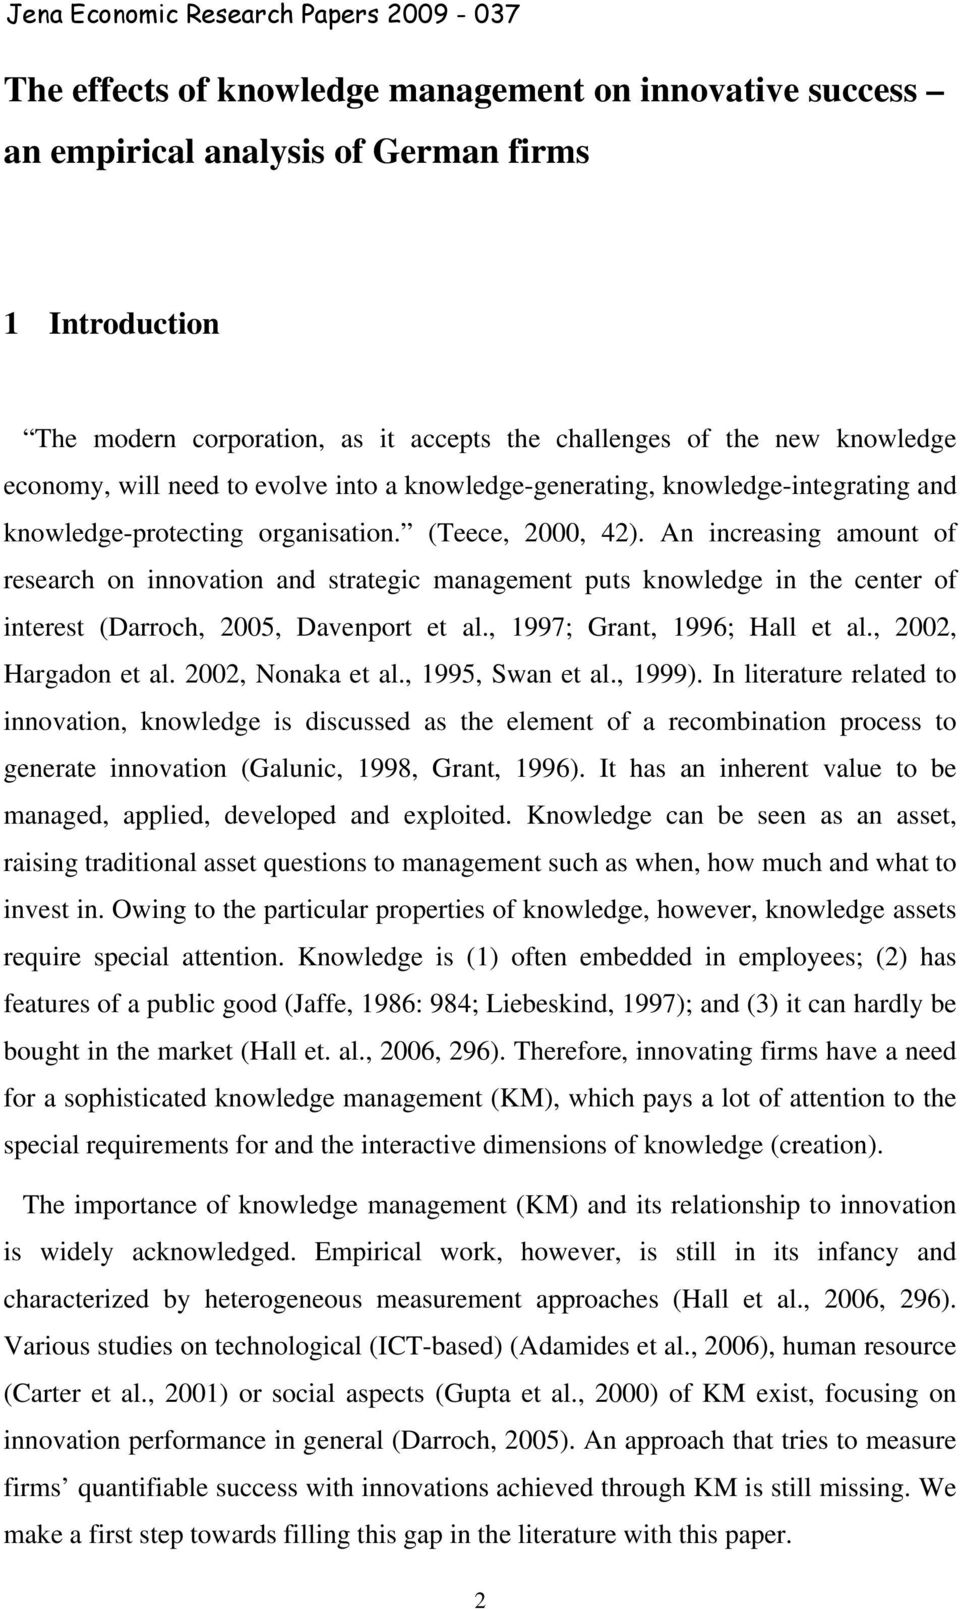 An increasing amount of research on innovation and strategic management puts knowledge in the center of interest (Darroch, 2005, Davenport et al., 1997; Grant, 1996; Hall et al., 2002, Hargadon et al.